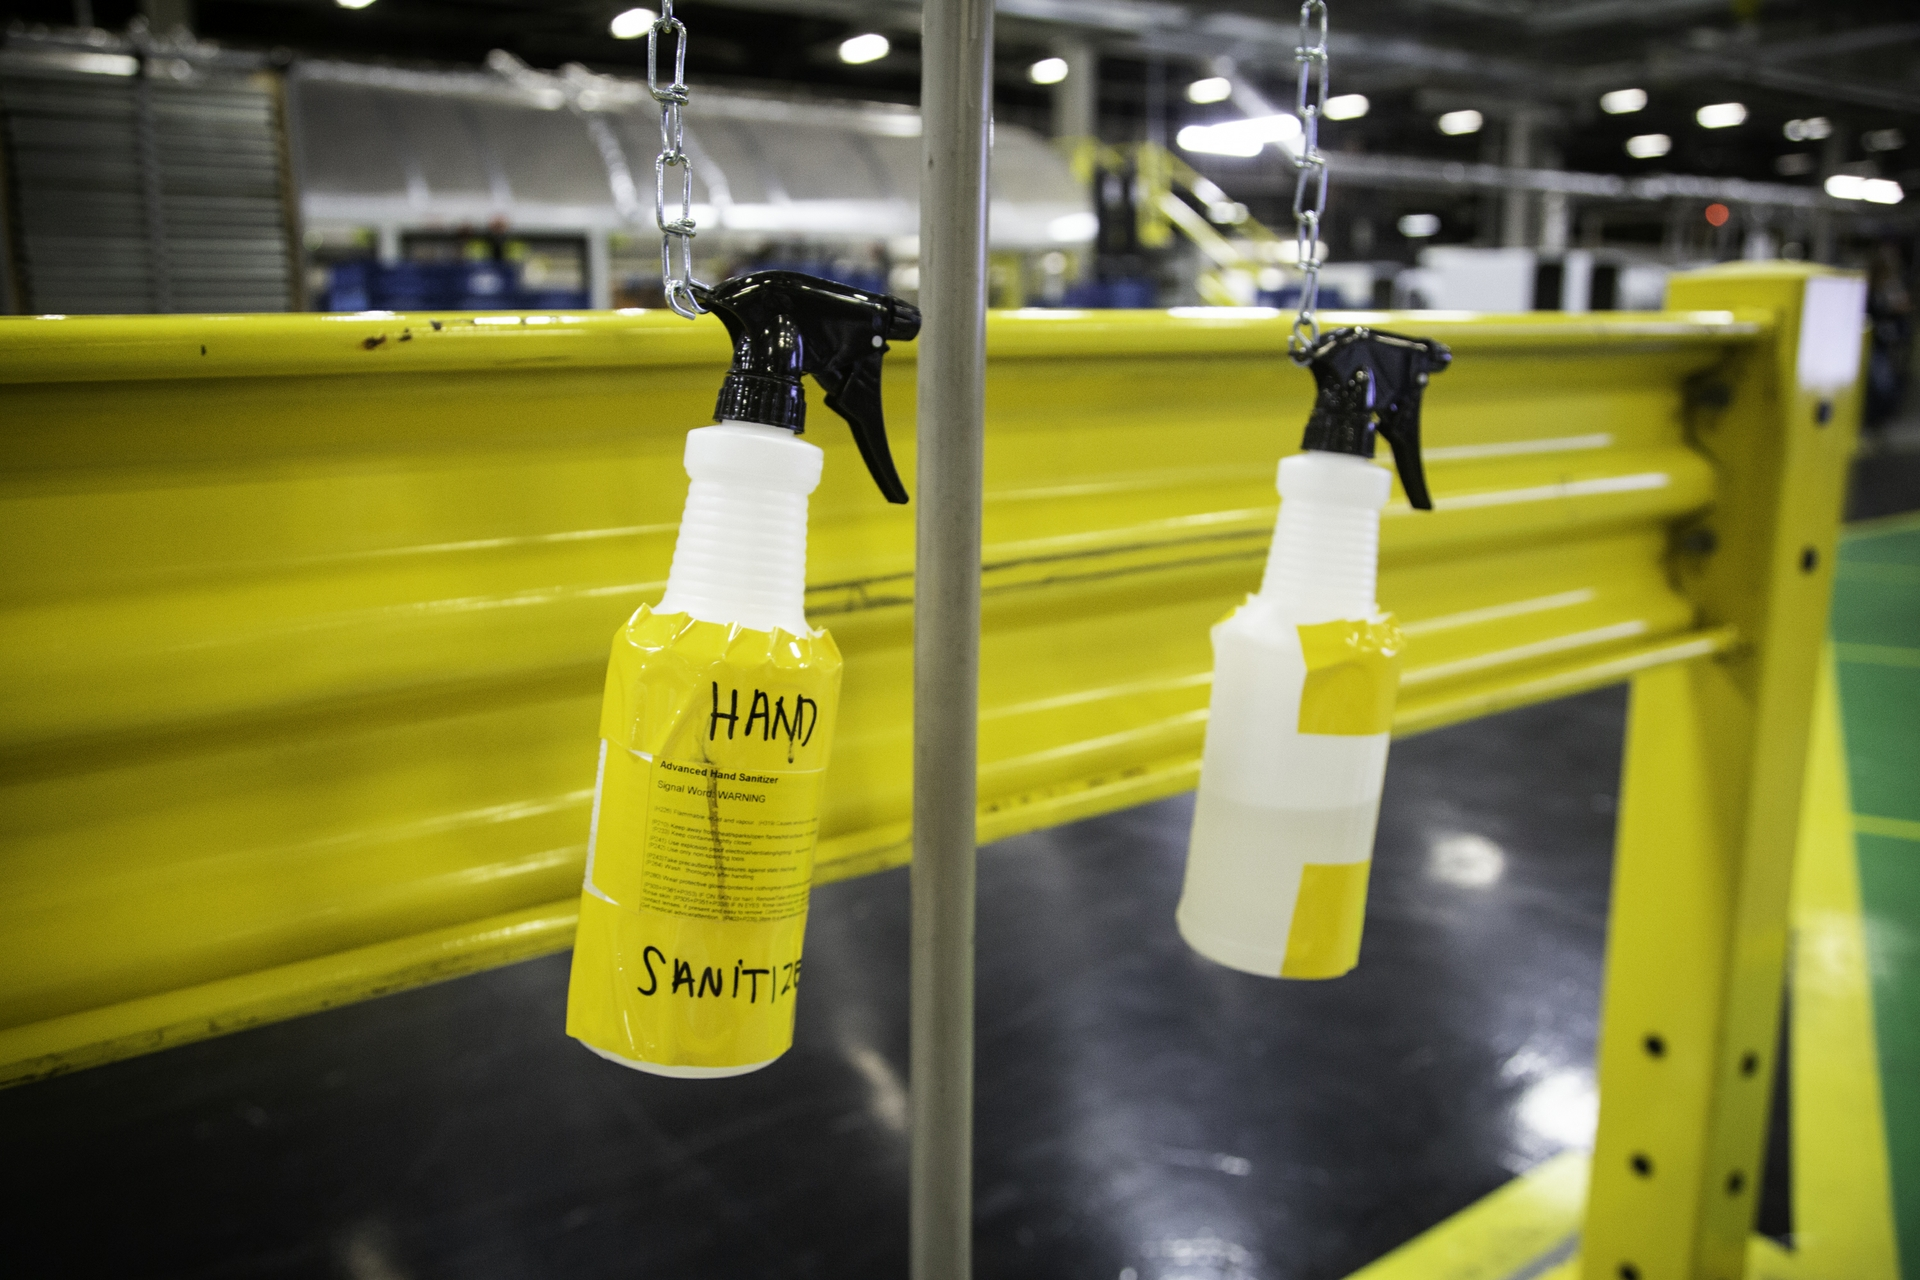 Hand Sanitizer Spray at a GEA Plant